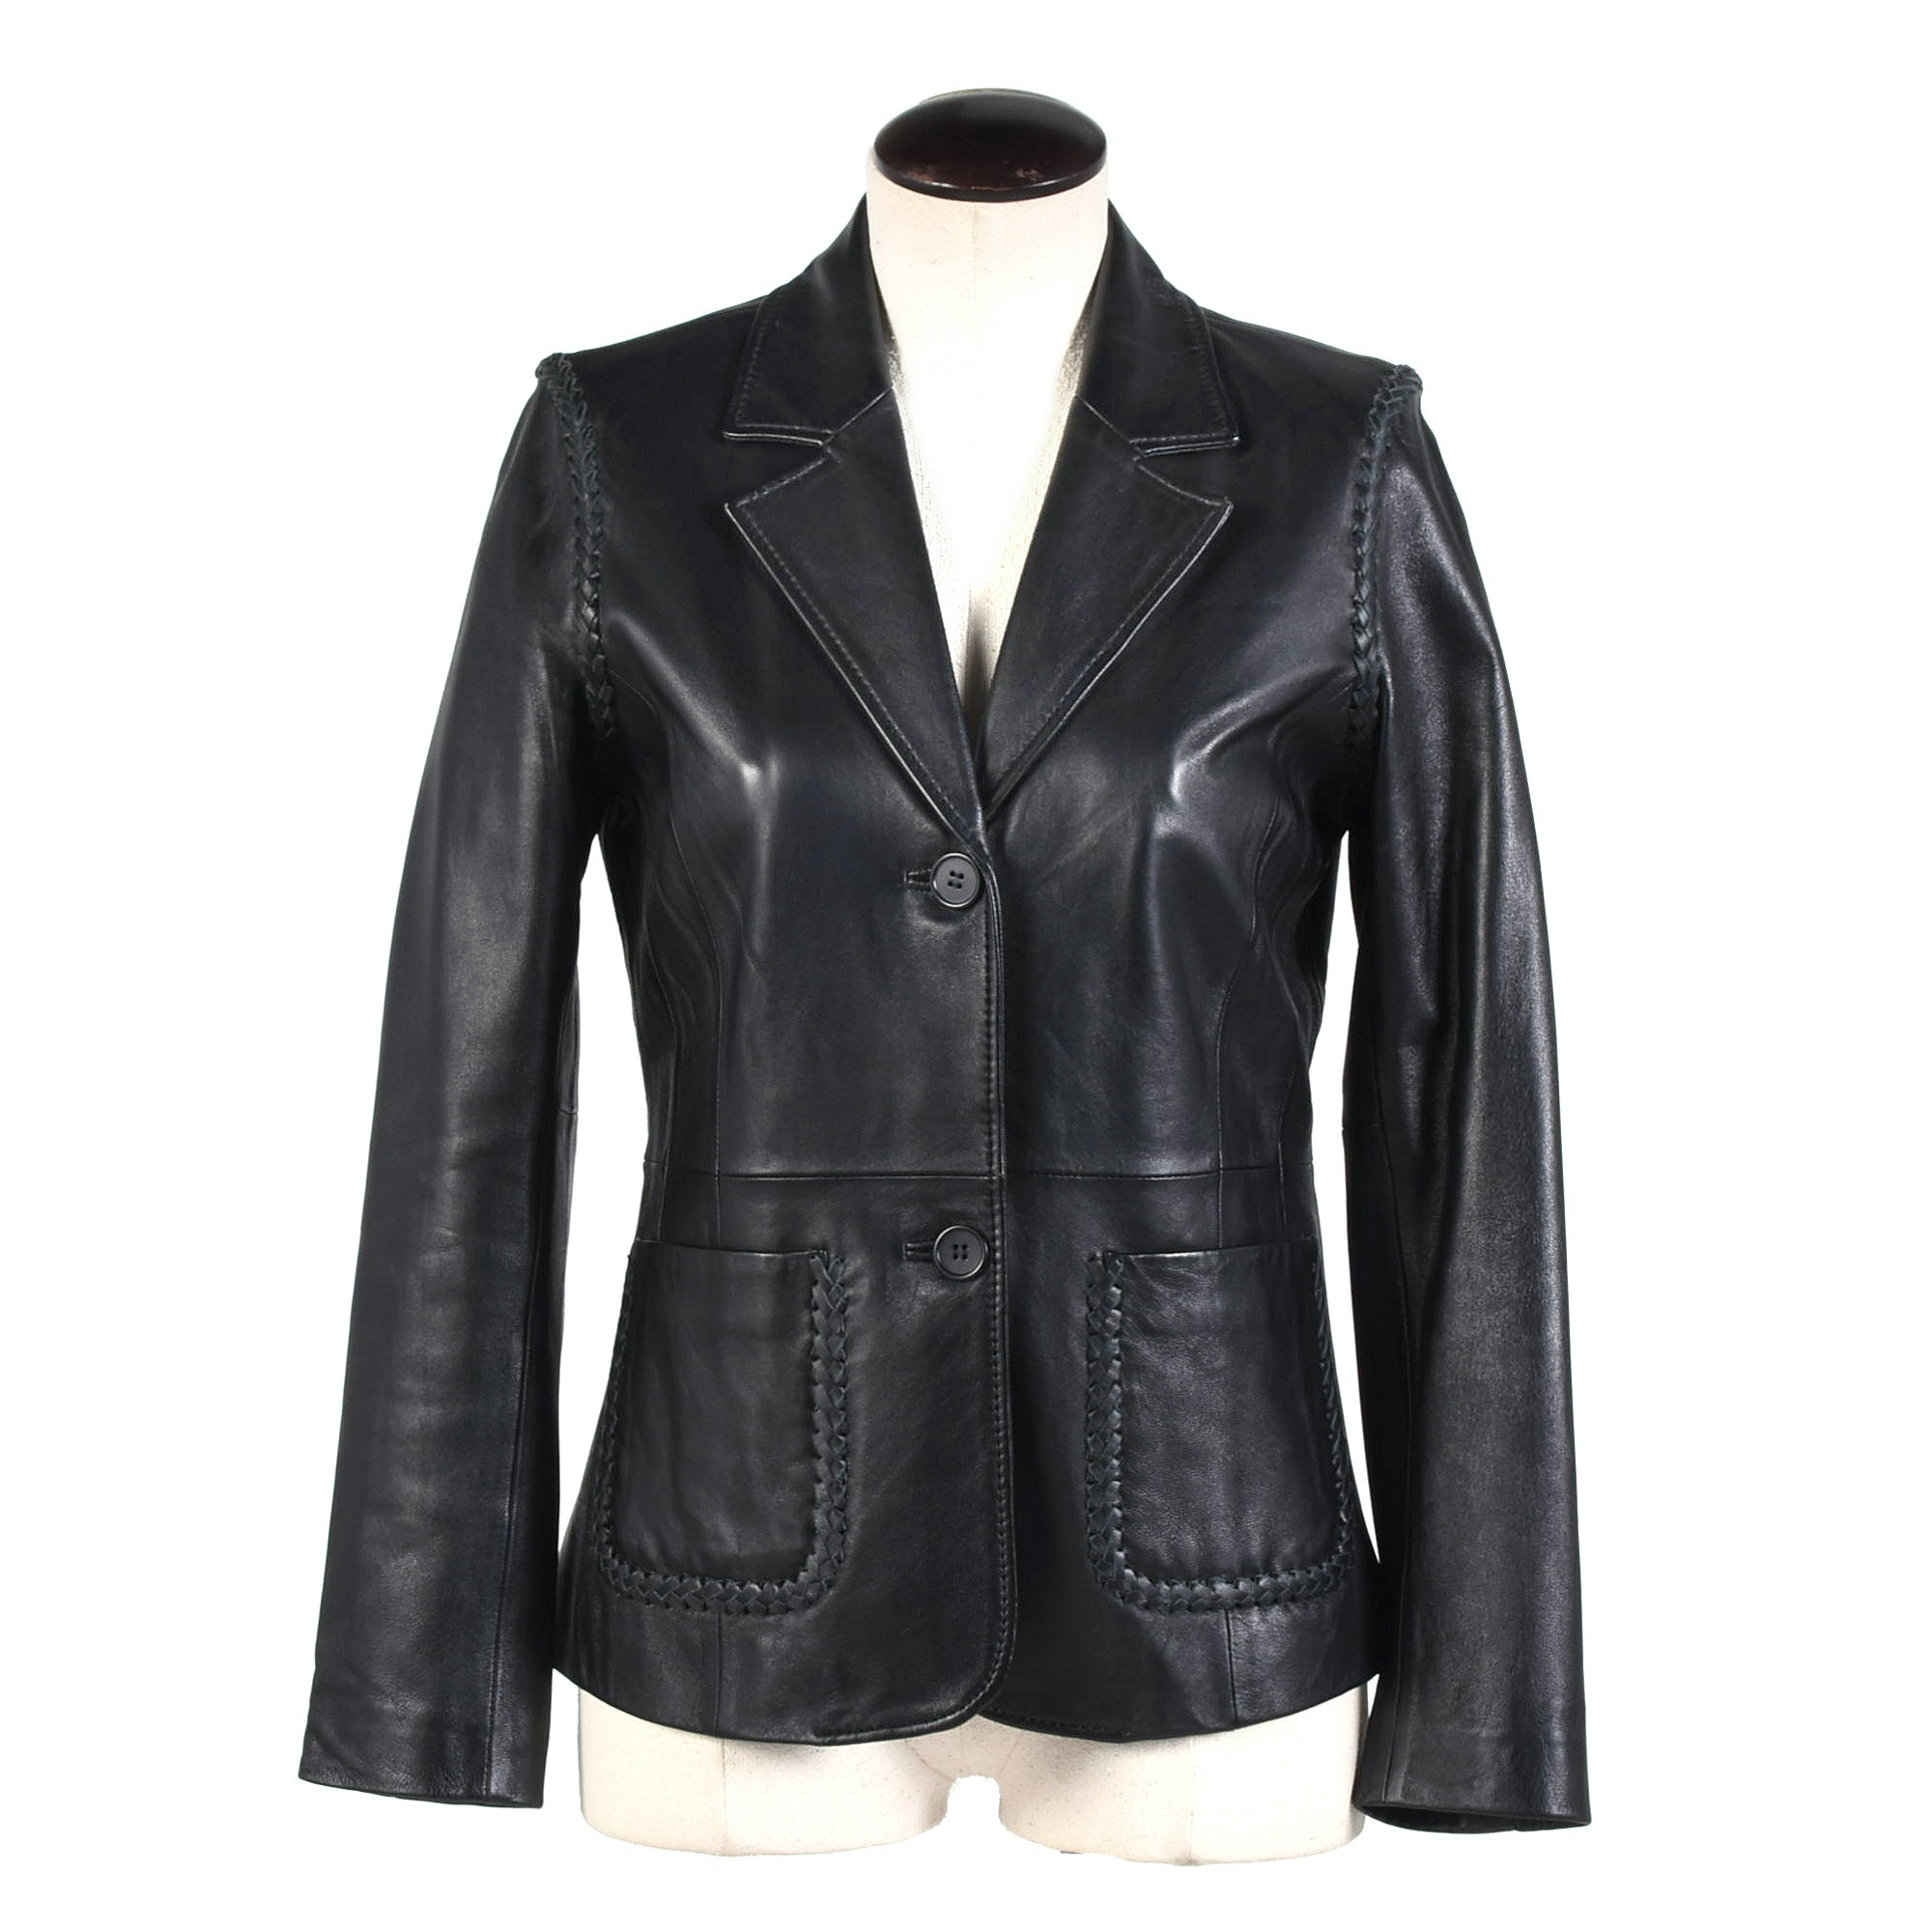 Women's Rem Garson Black Leather Jacket with Braided Detailing